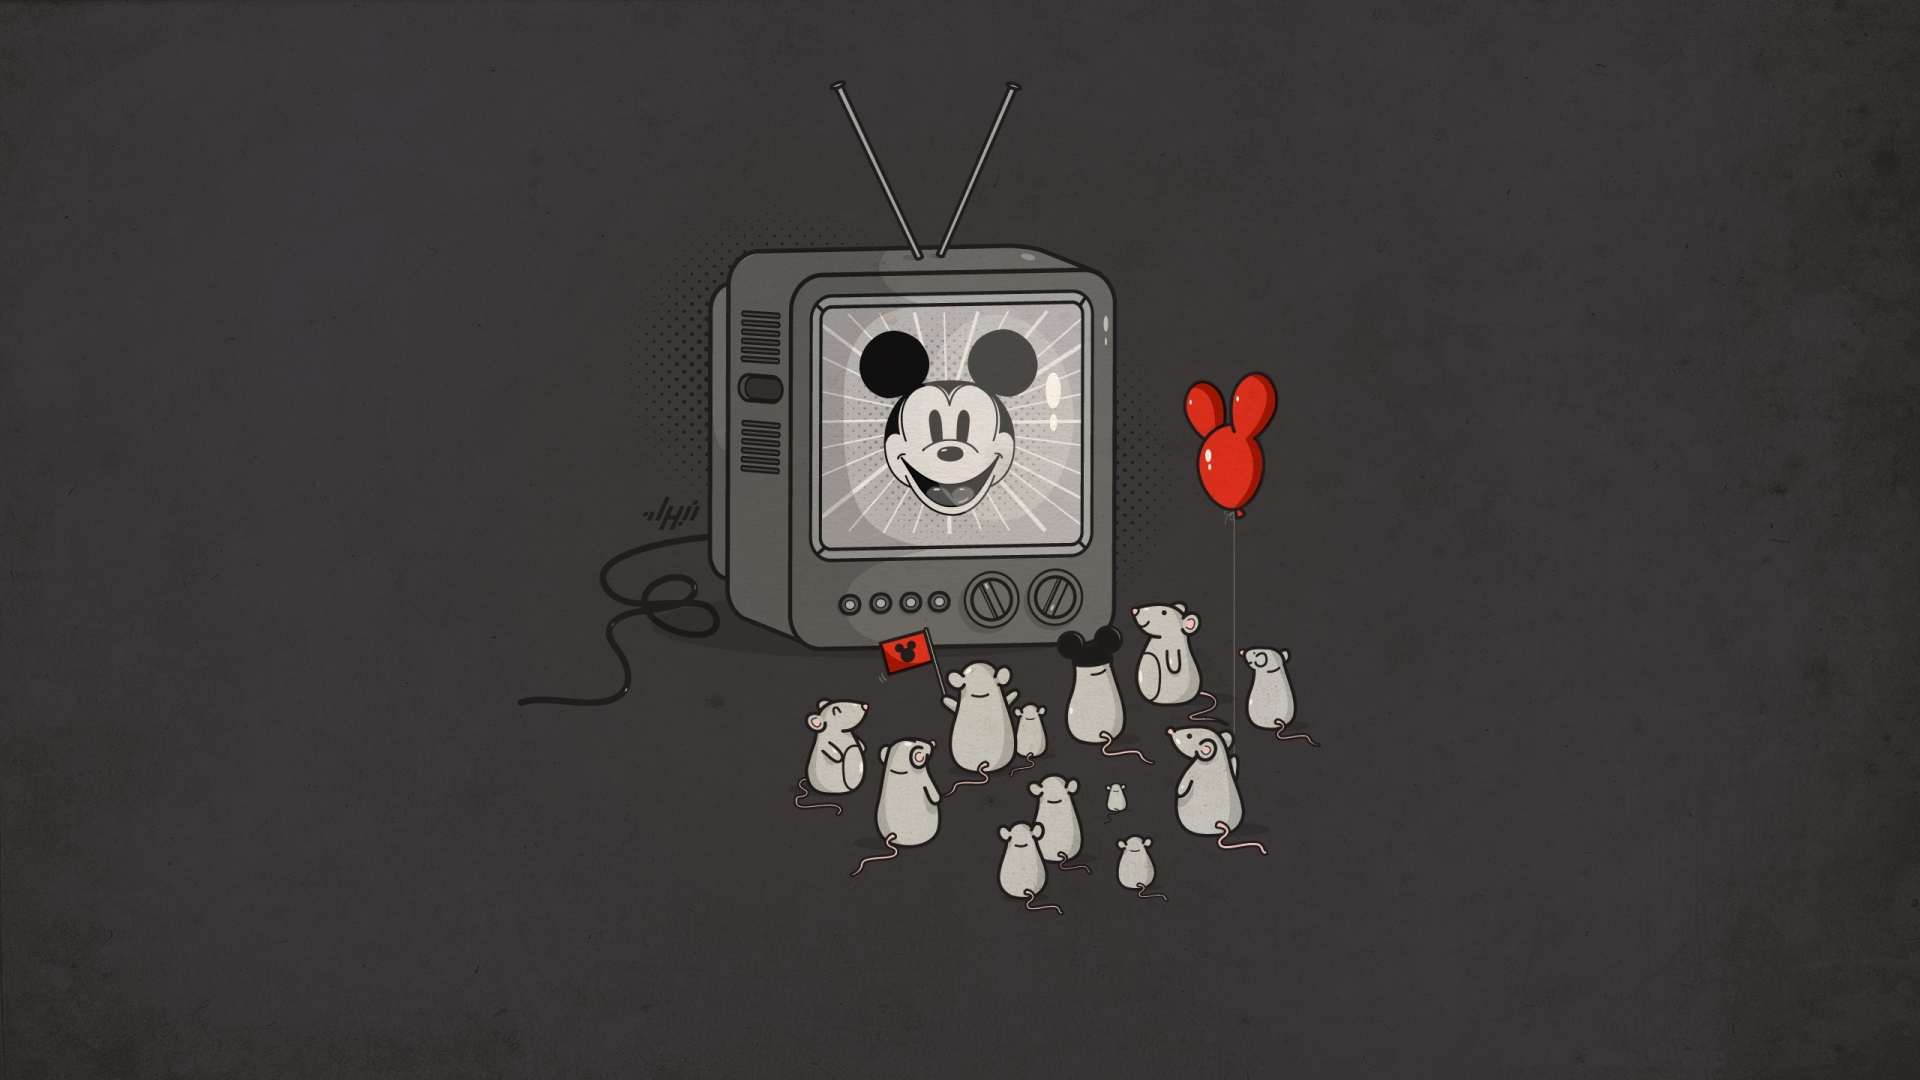 Mickey-Mouse-1920x1080-wallpaper-wp3408595